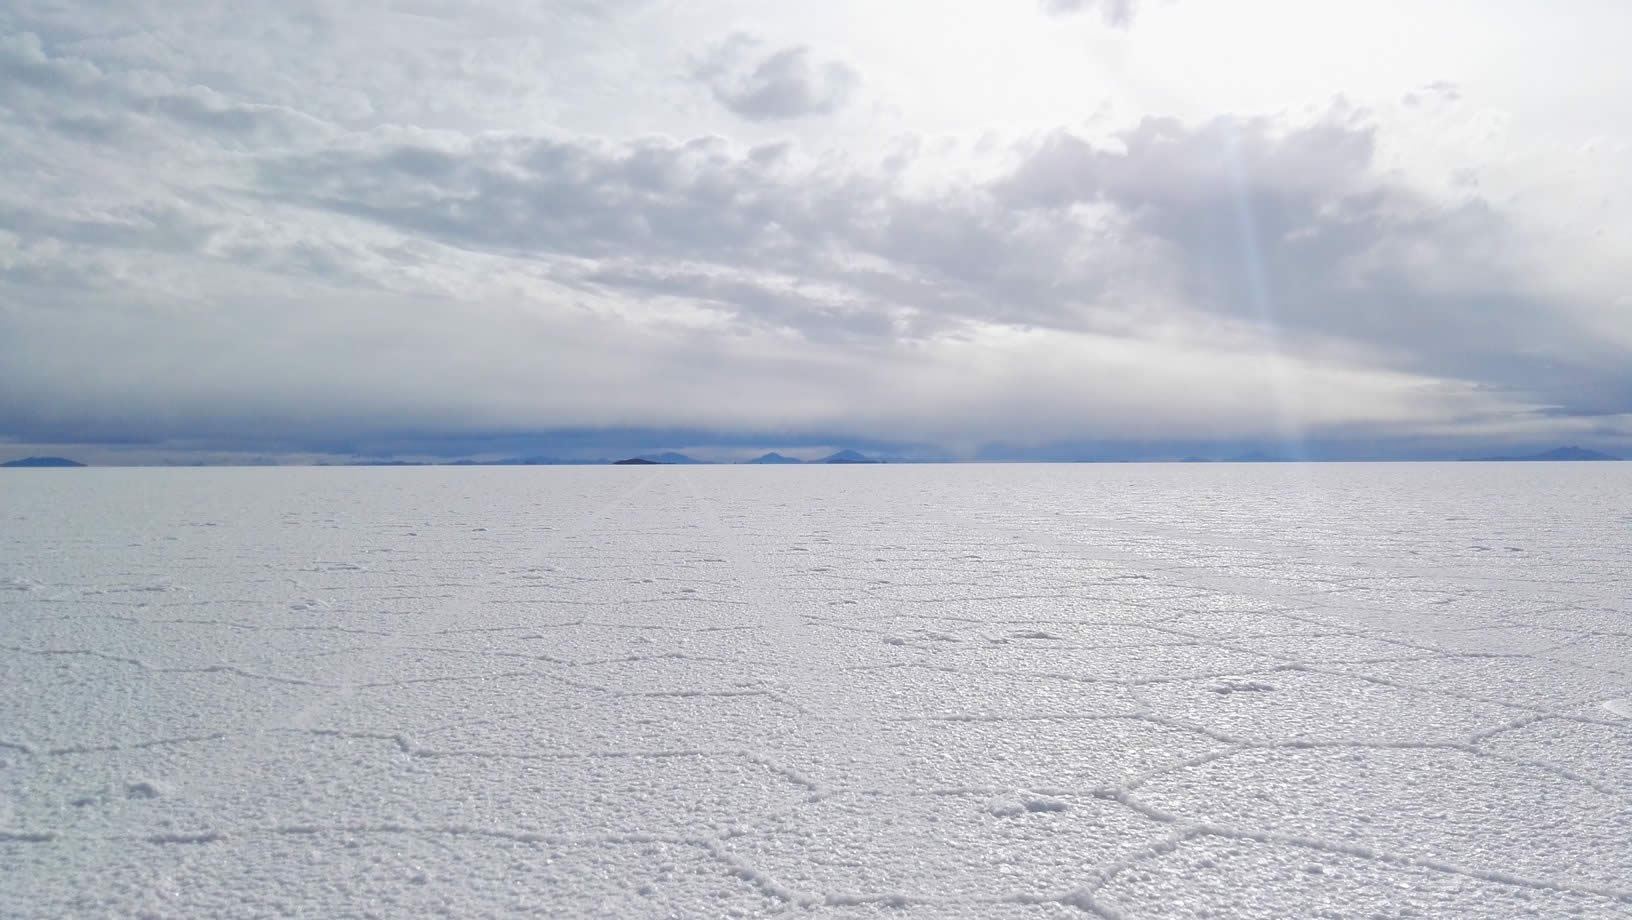 When is the best time to visit the Uyuni Salt Flats?